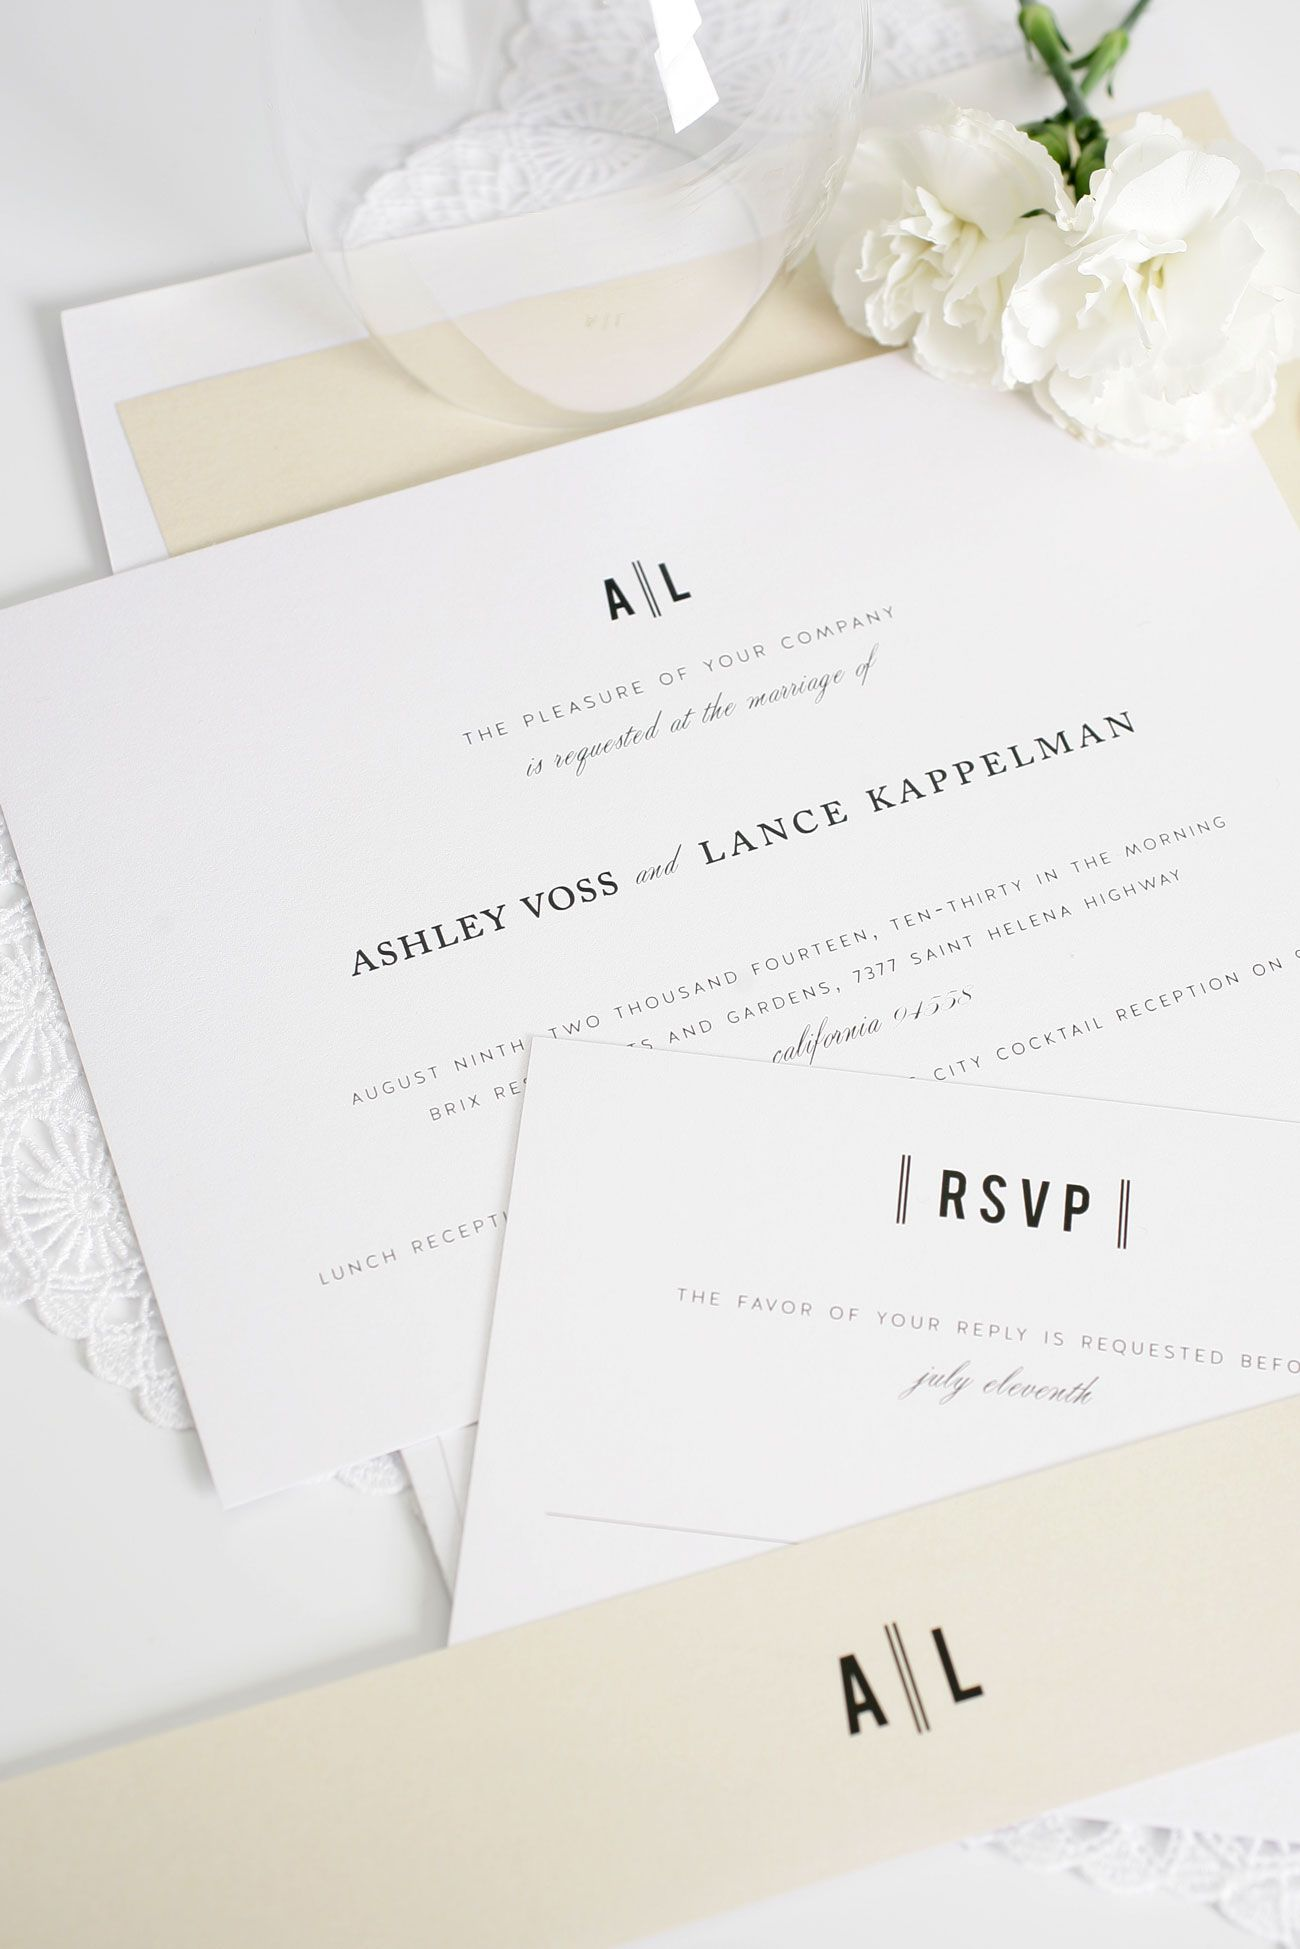 Urban Wedding Invitations in Champagne | Vintage wedding invitations ...